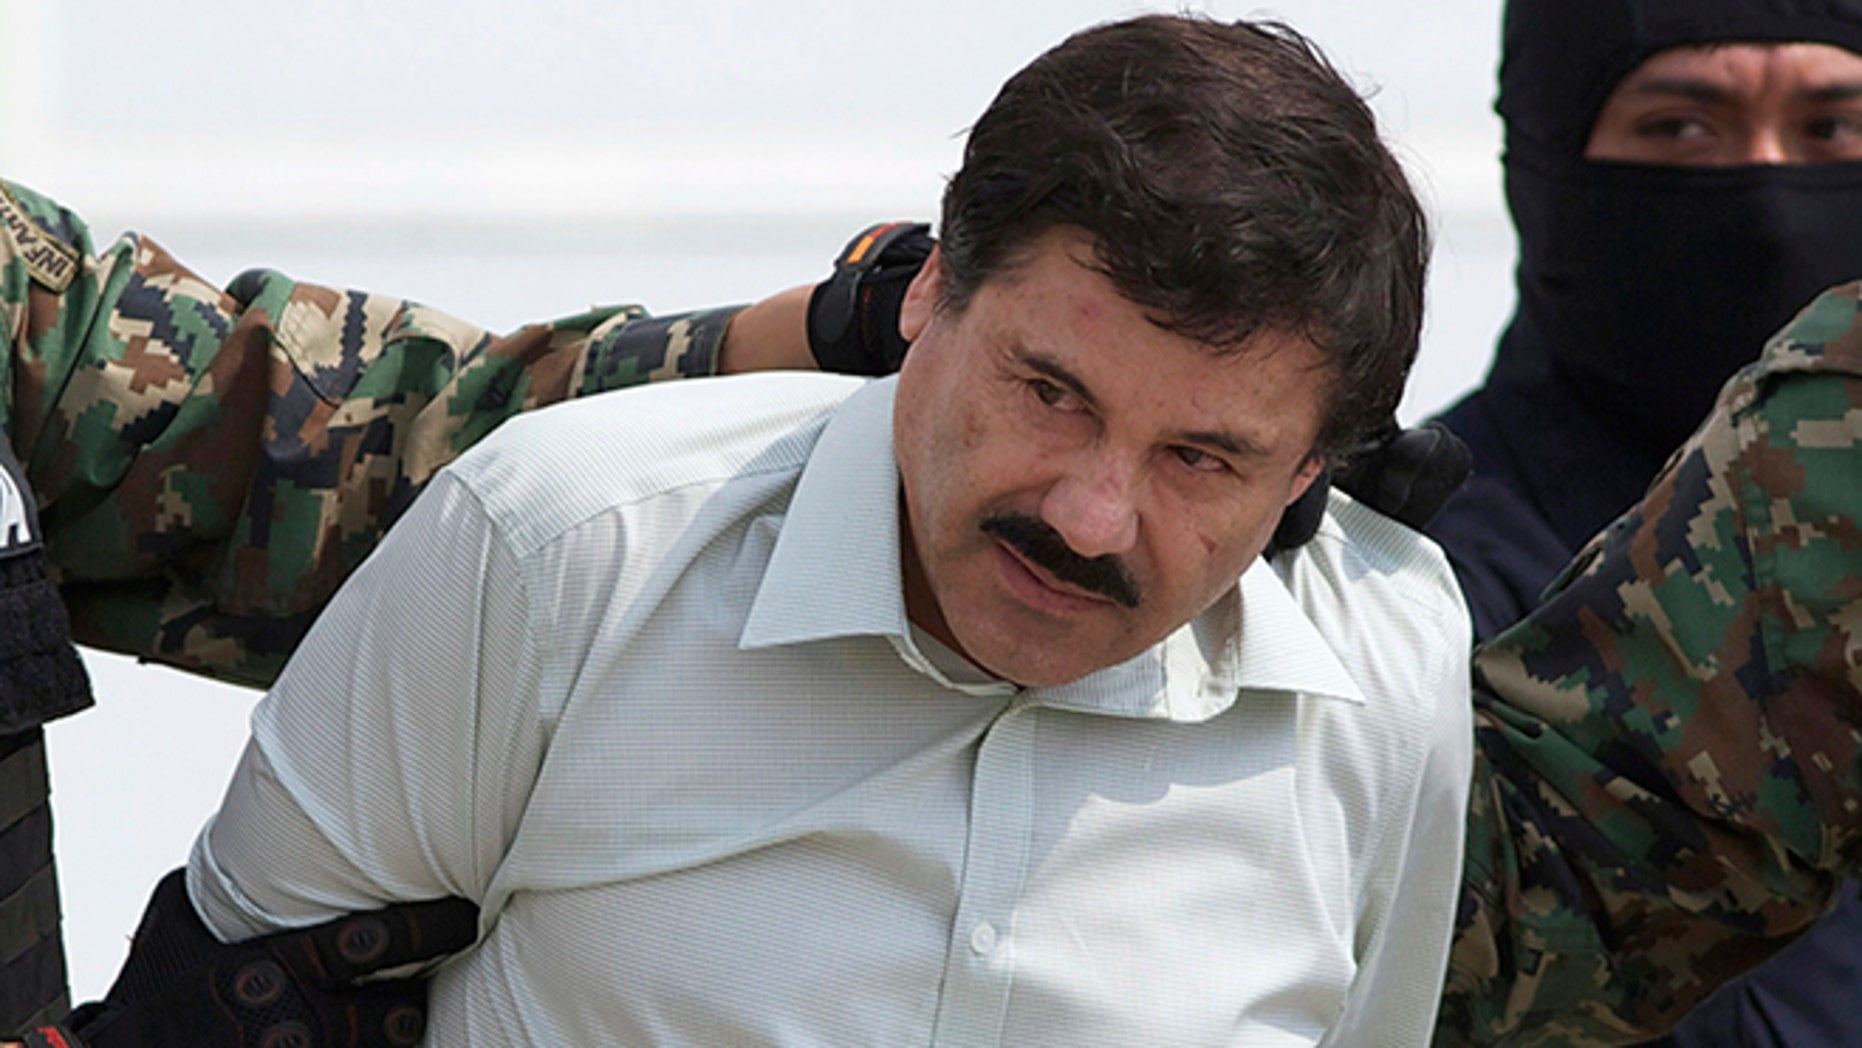 """FILE - In this Feb. 22, 2014, file photo, Joaquin """"El Chapo"""" Guzman, head of Mexicoâs Sinaloa Cartel, is escorted to a helicopter in Mexico City, following his capture overnight in the beach resort town of Mazatlan. Mexicoâs security commission said in a statement late Saturday, July 11, 2015, the top drug lord Joaquin âEl Chapoâ Guzman has escaped from a maximum security prison, the second time he has fled after being captured. (AP Photo/Eduardo Verdugo, File)"""